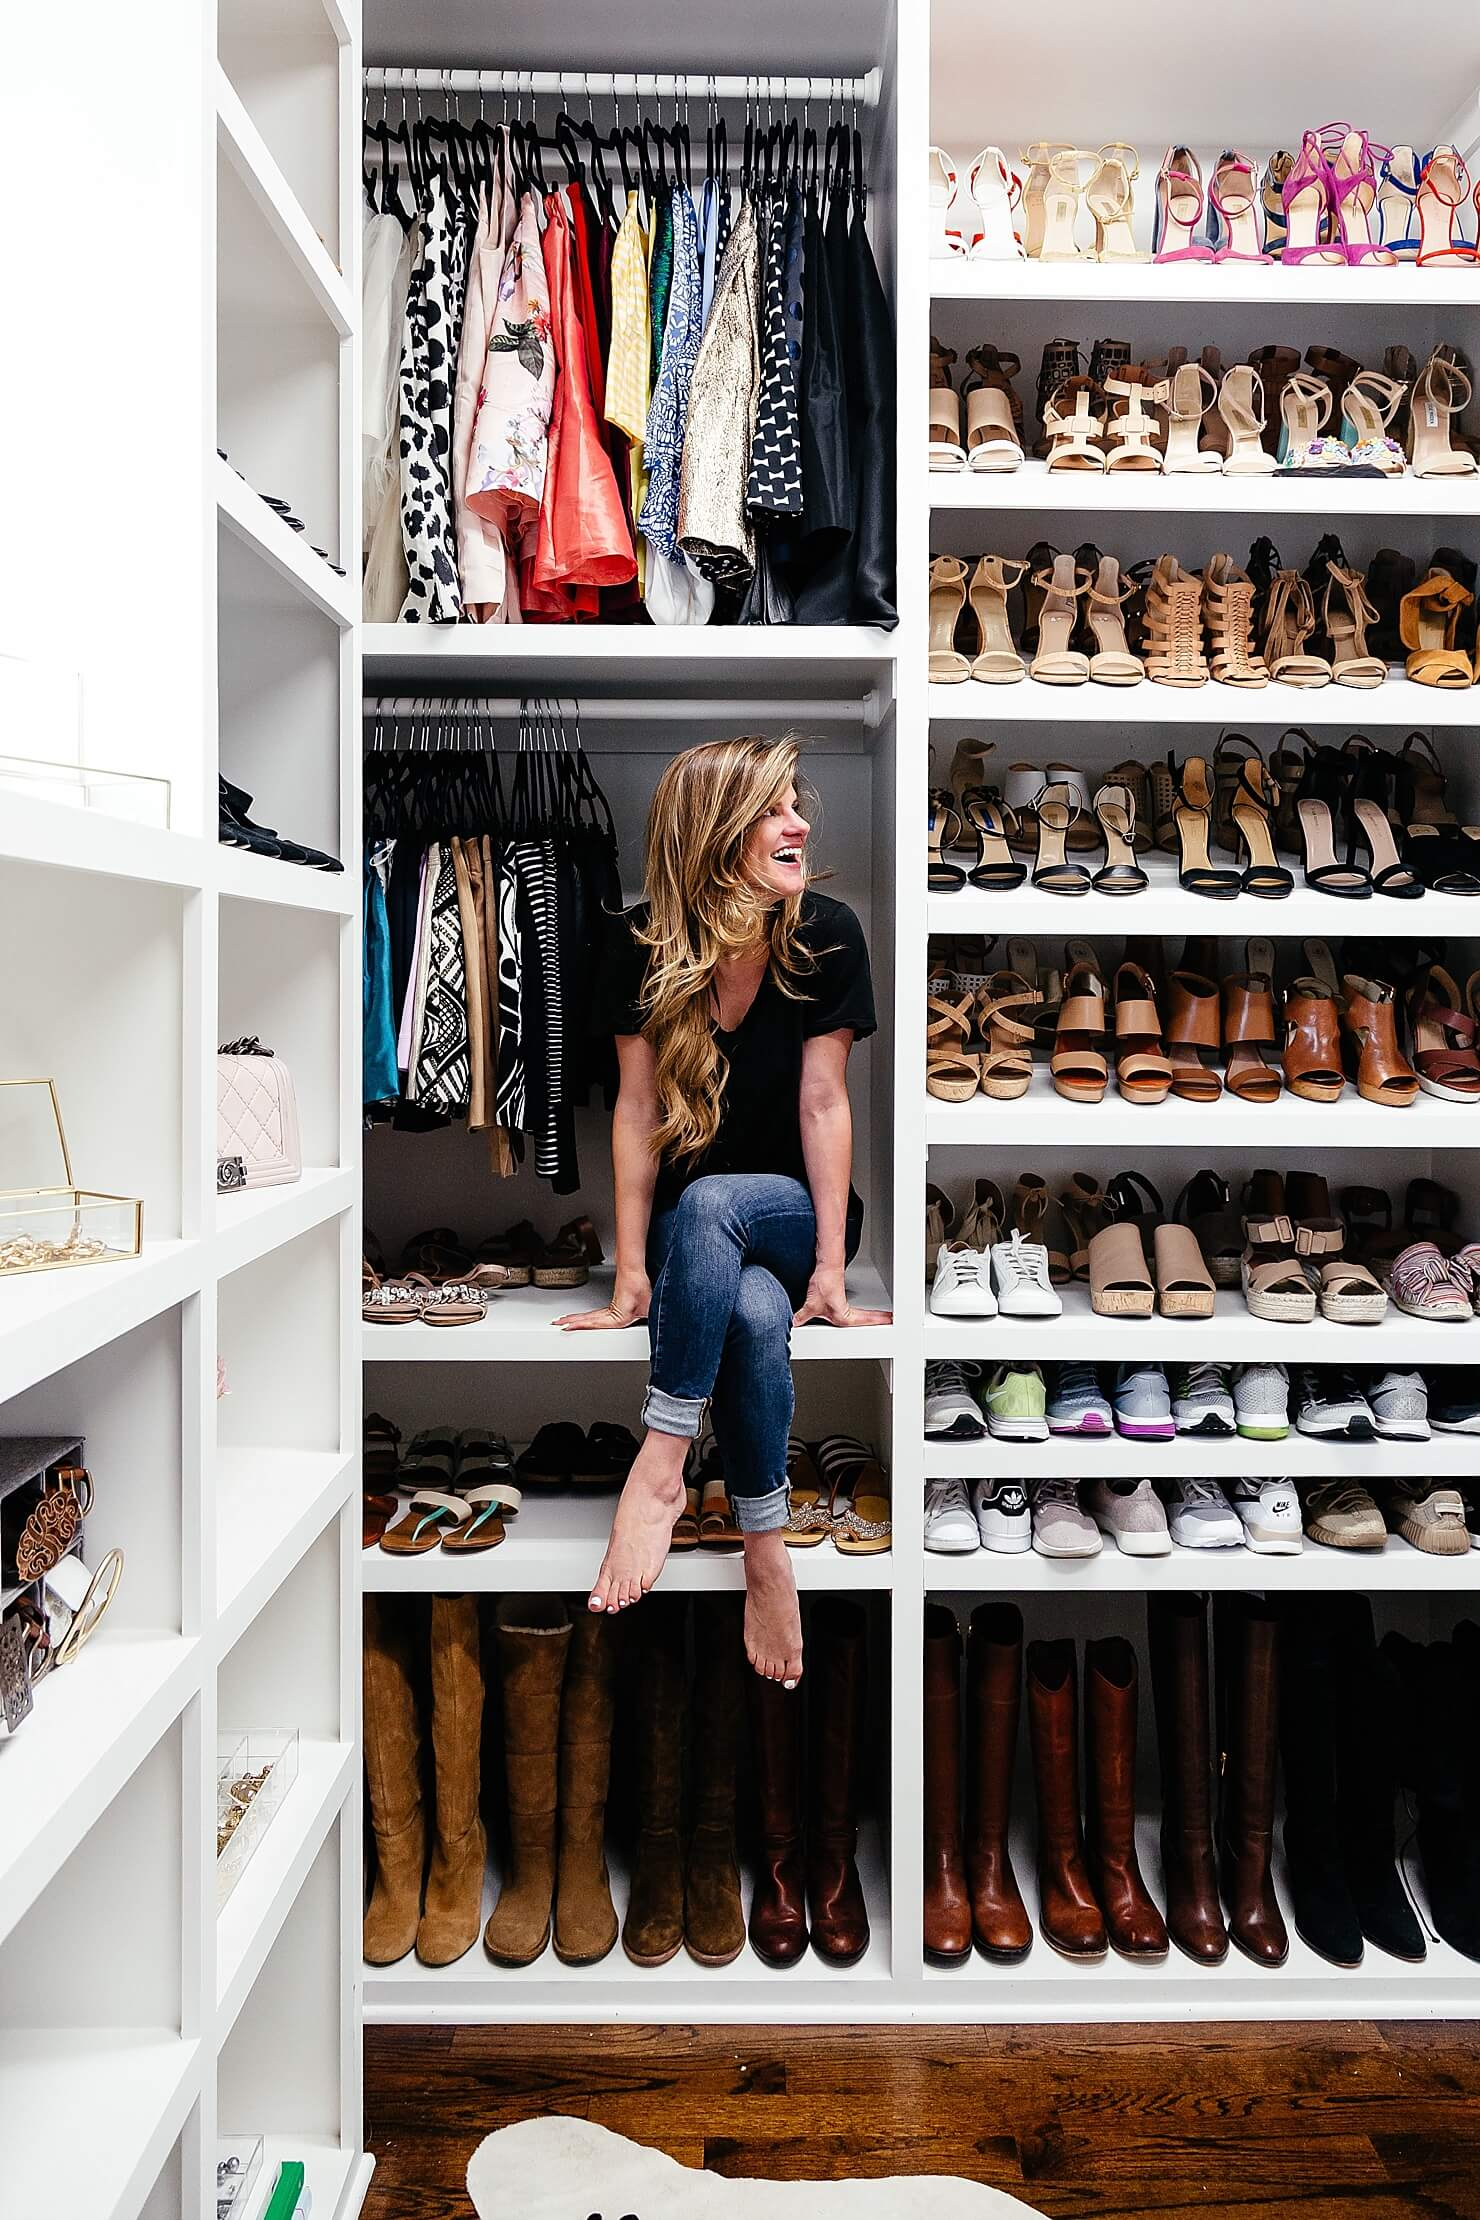 brighton keller new home closet reveal